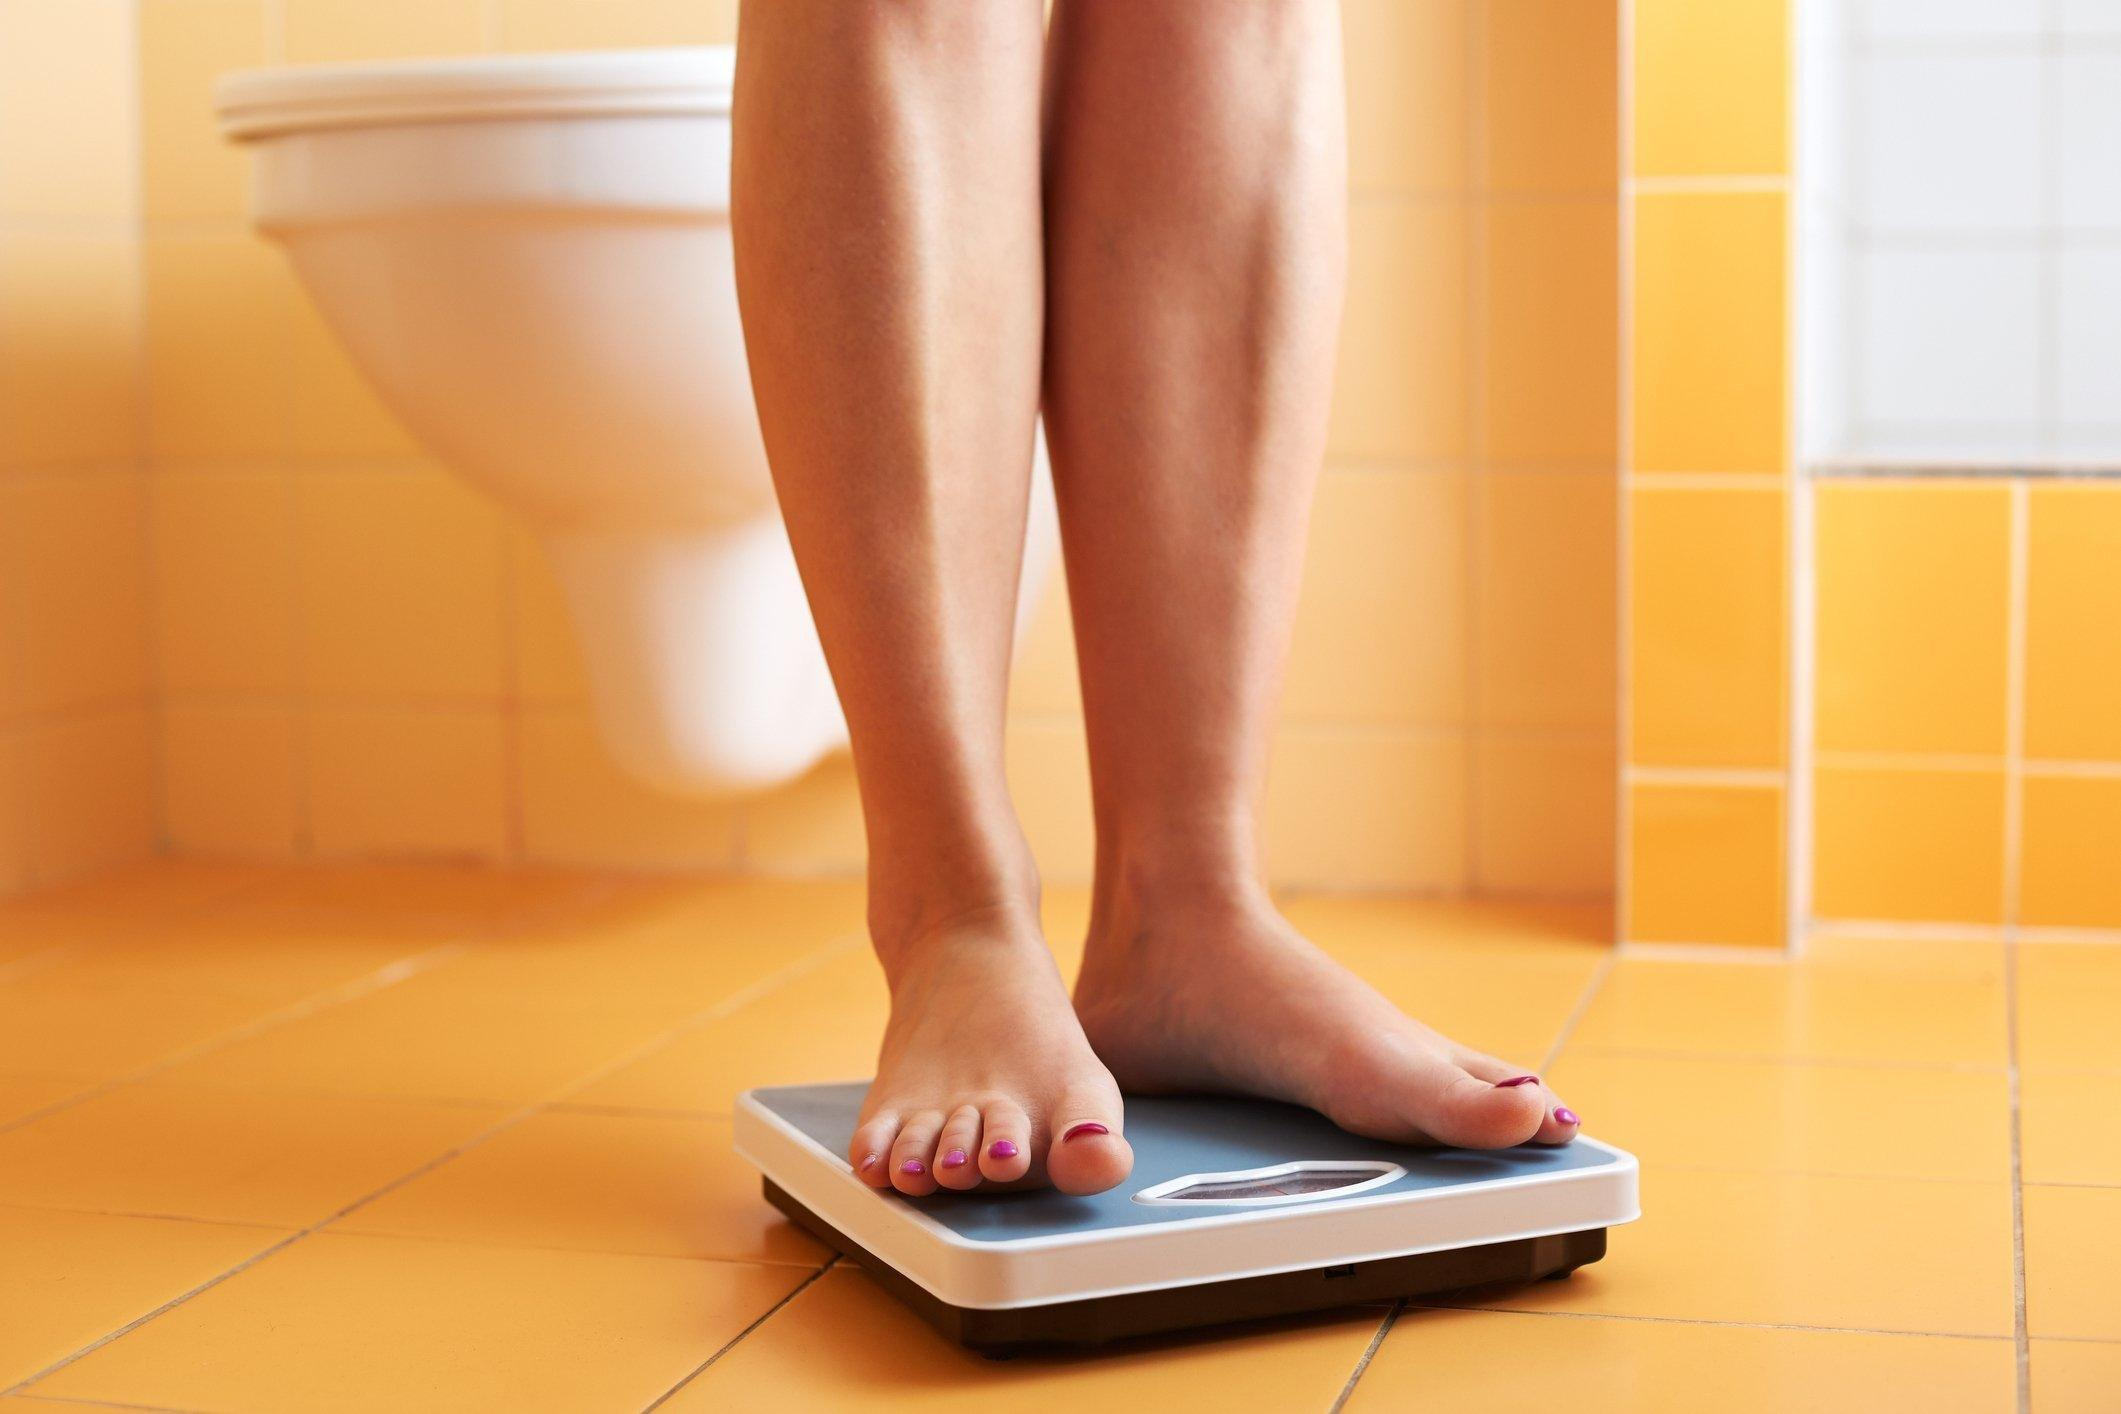 Unexplained Weight Loss? Why You Need To See A Doctor